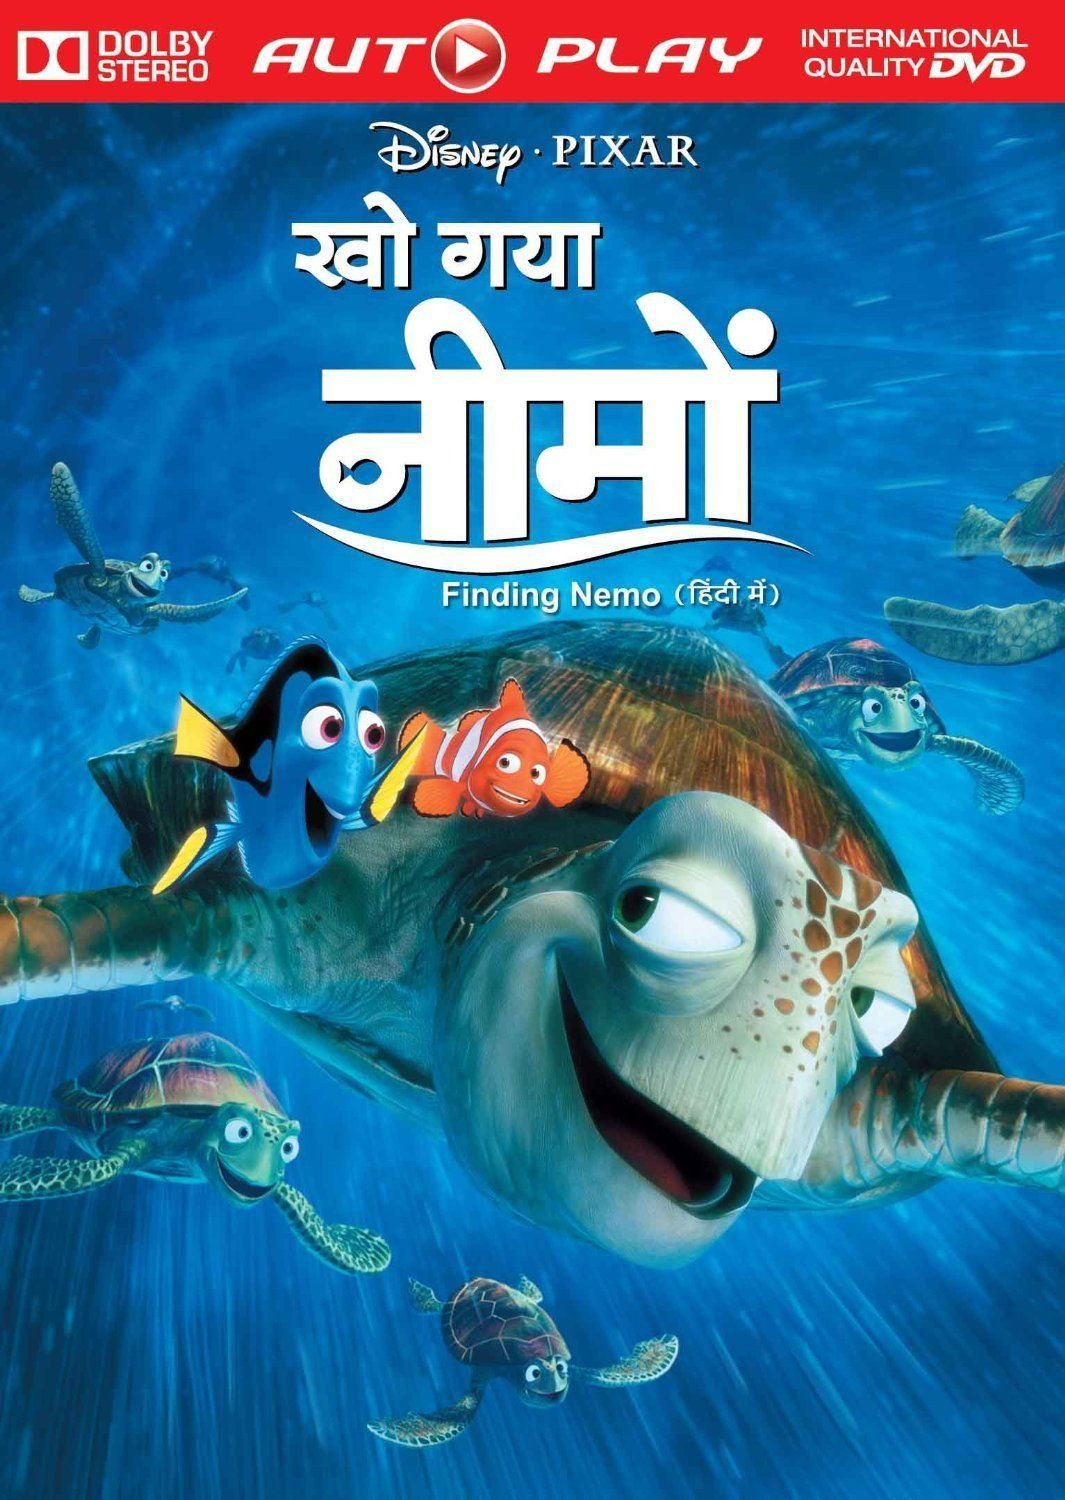 Finding Nemo Hindi Dvd Finding Nemo Movie Nemo Movie Finding Nemo Poster